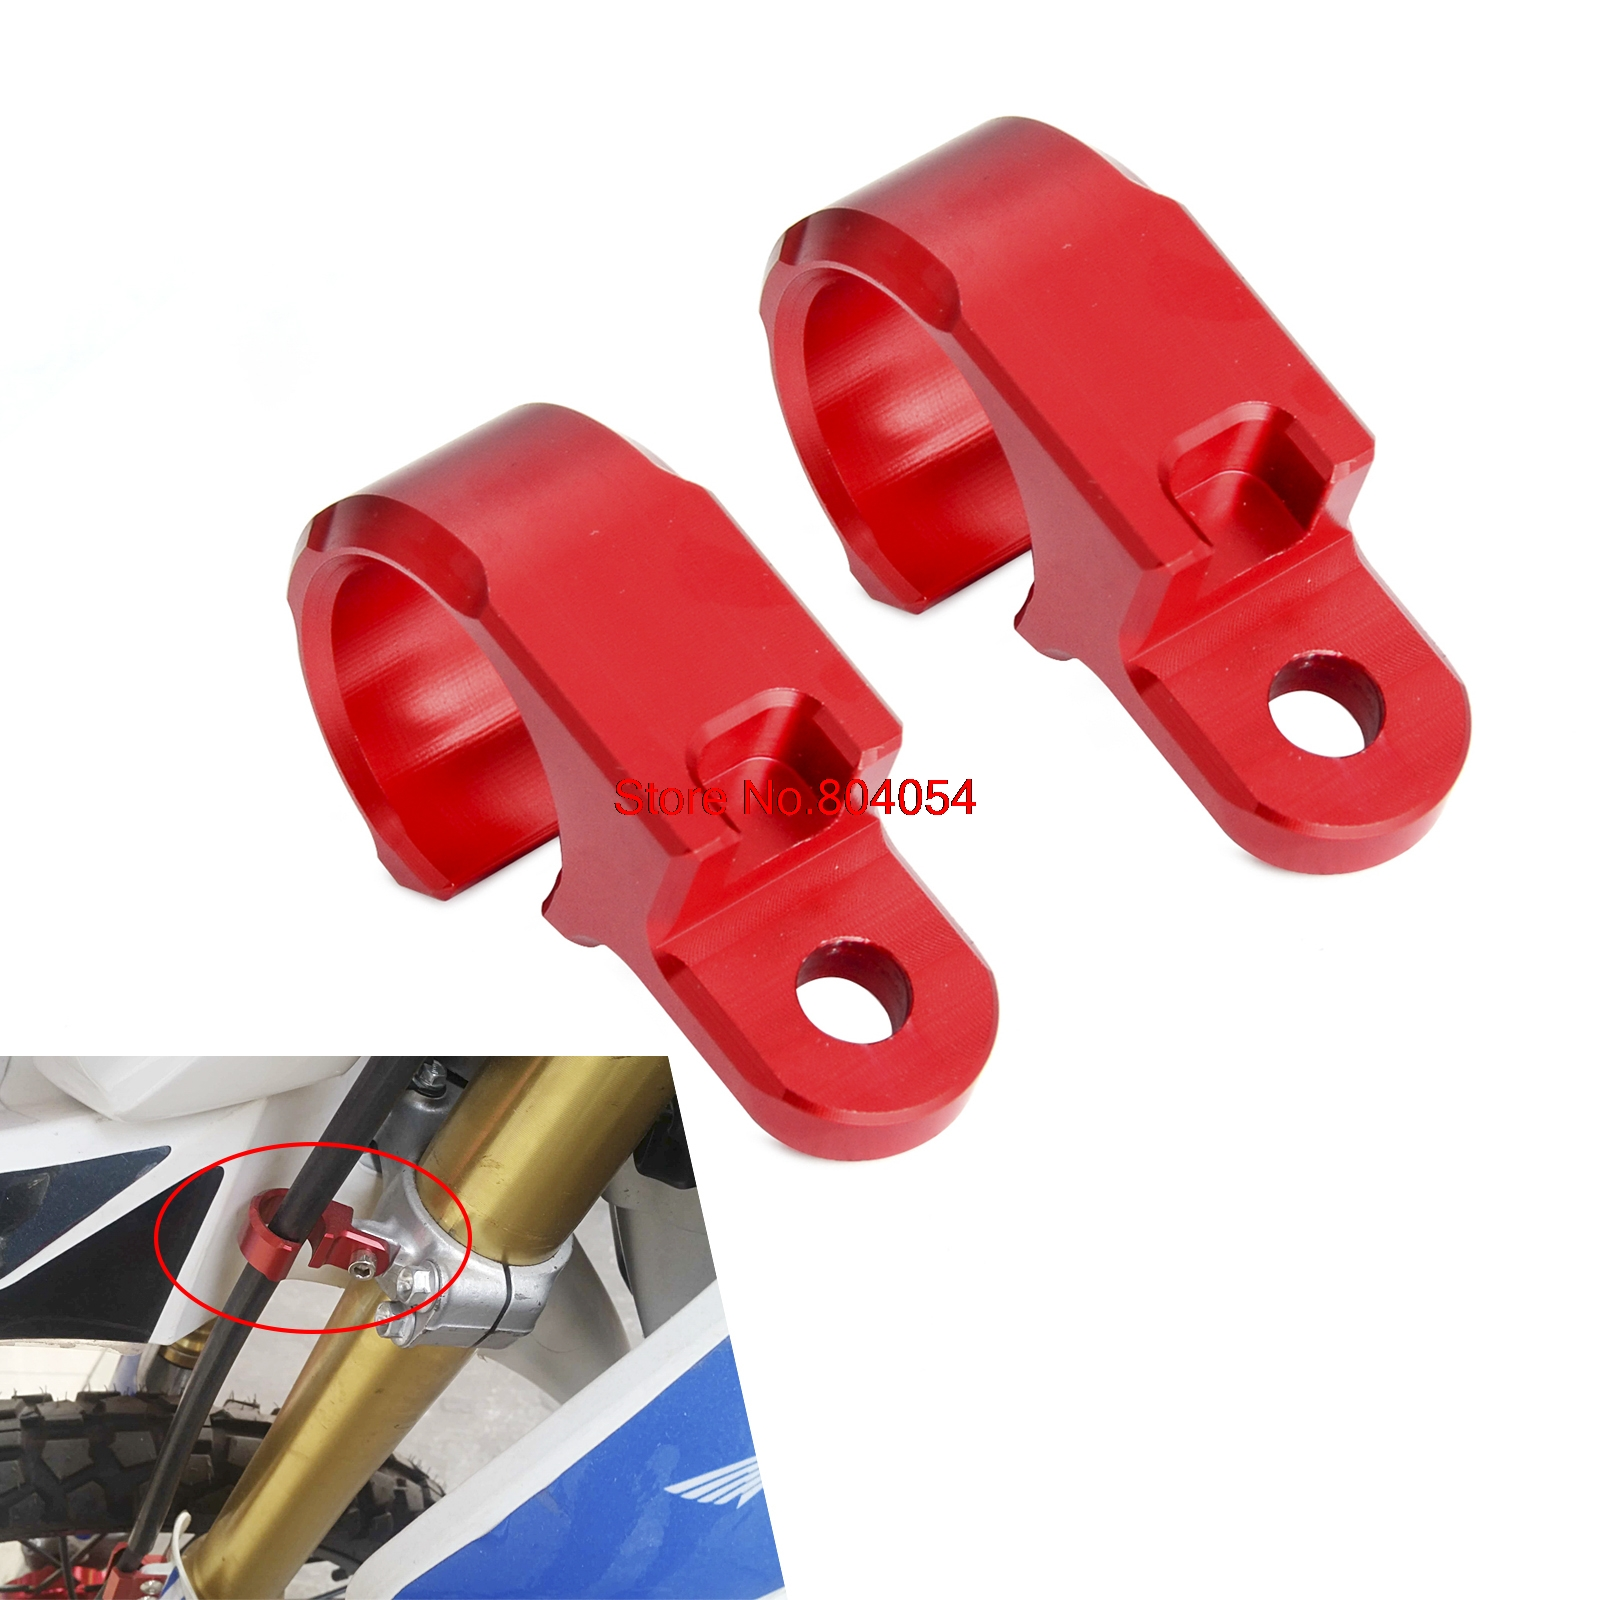 CNC Front Brake Line Hose Clamp Holder For Honda CRF250L CRF250M 2012 - 2015 2013 2014 CRF250 L/M<br><br>Aliexpress